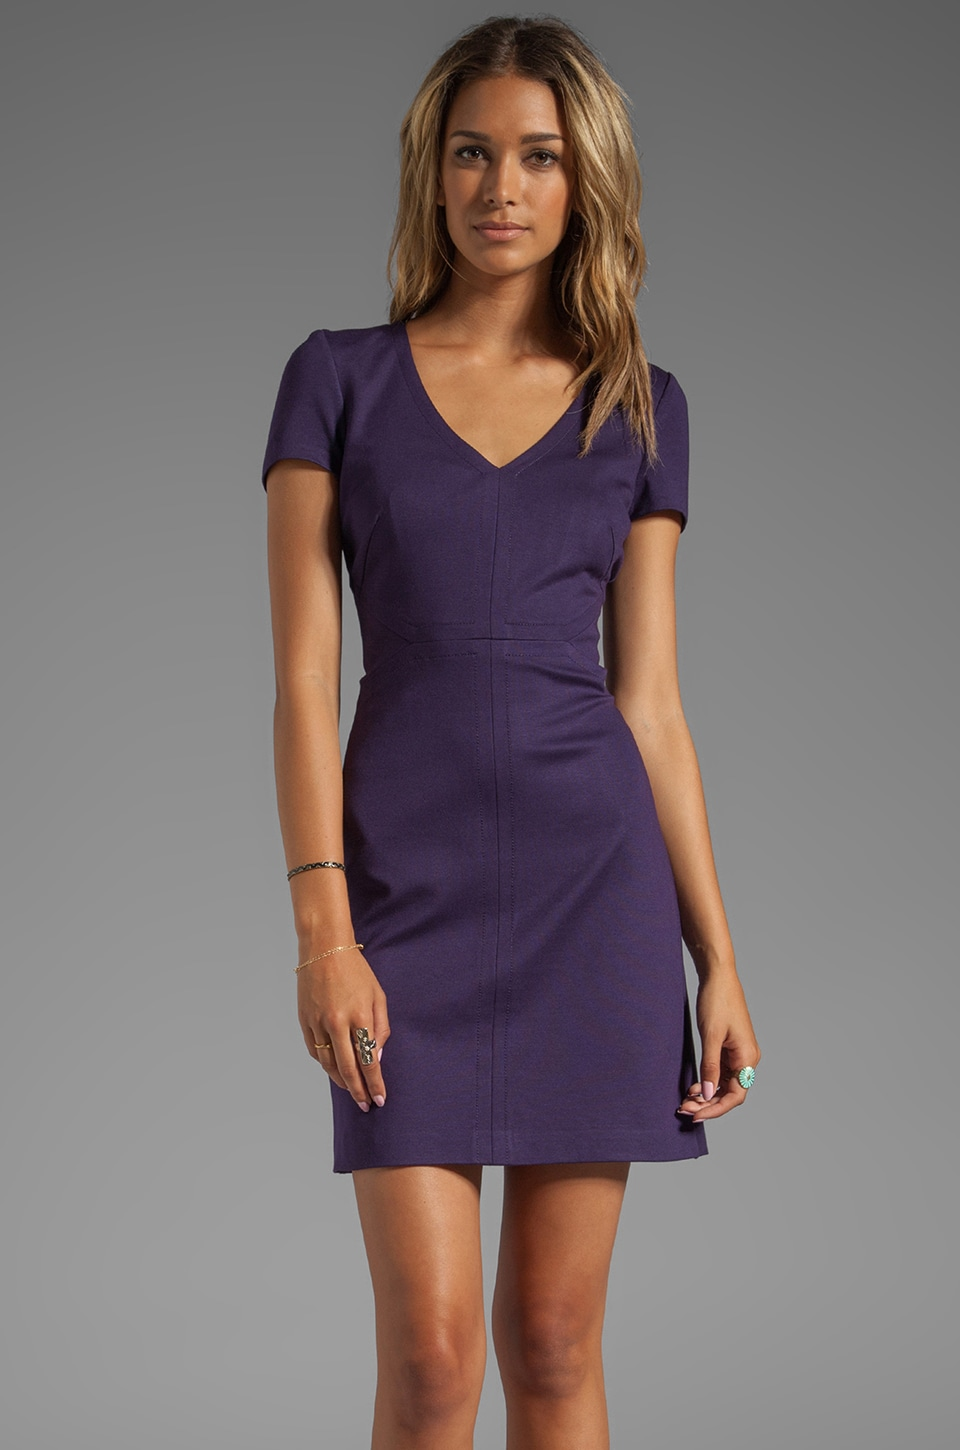 Trina Turk Ponte Knit Calista Dress in Black Plum